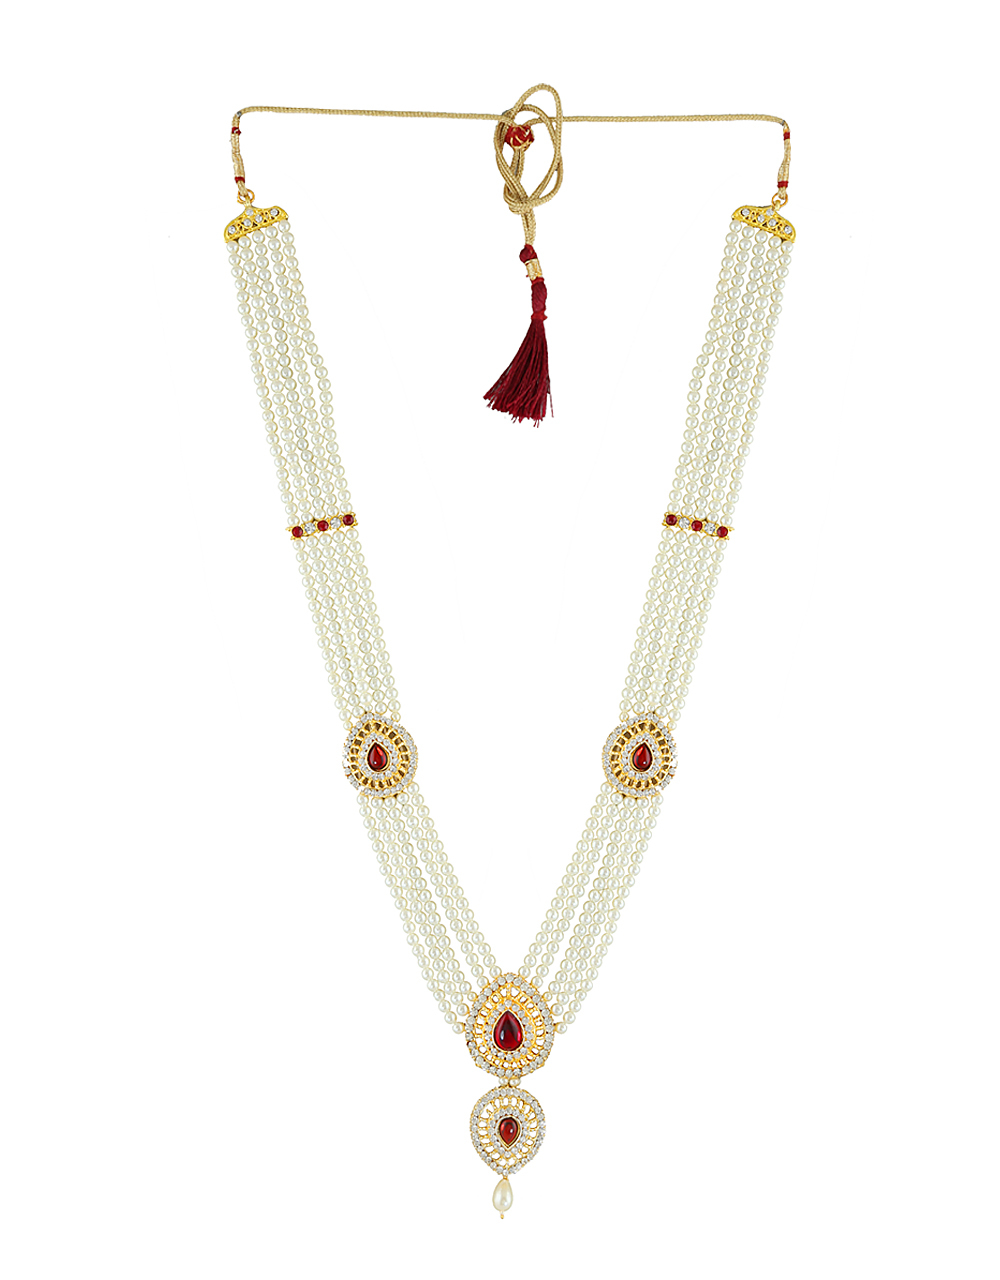 Red Colour Gold Finish Stunning Moti Necklace For Ganpati Jewellery